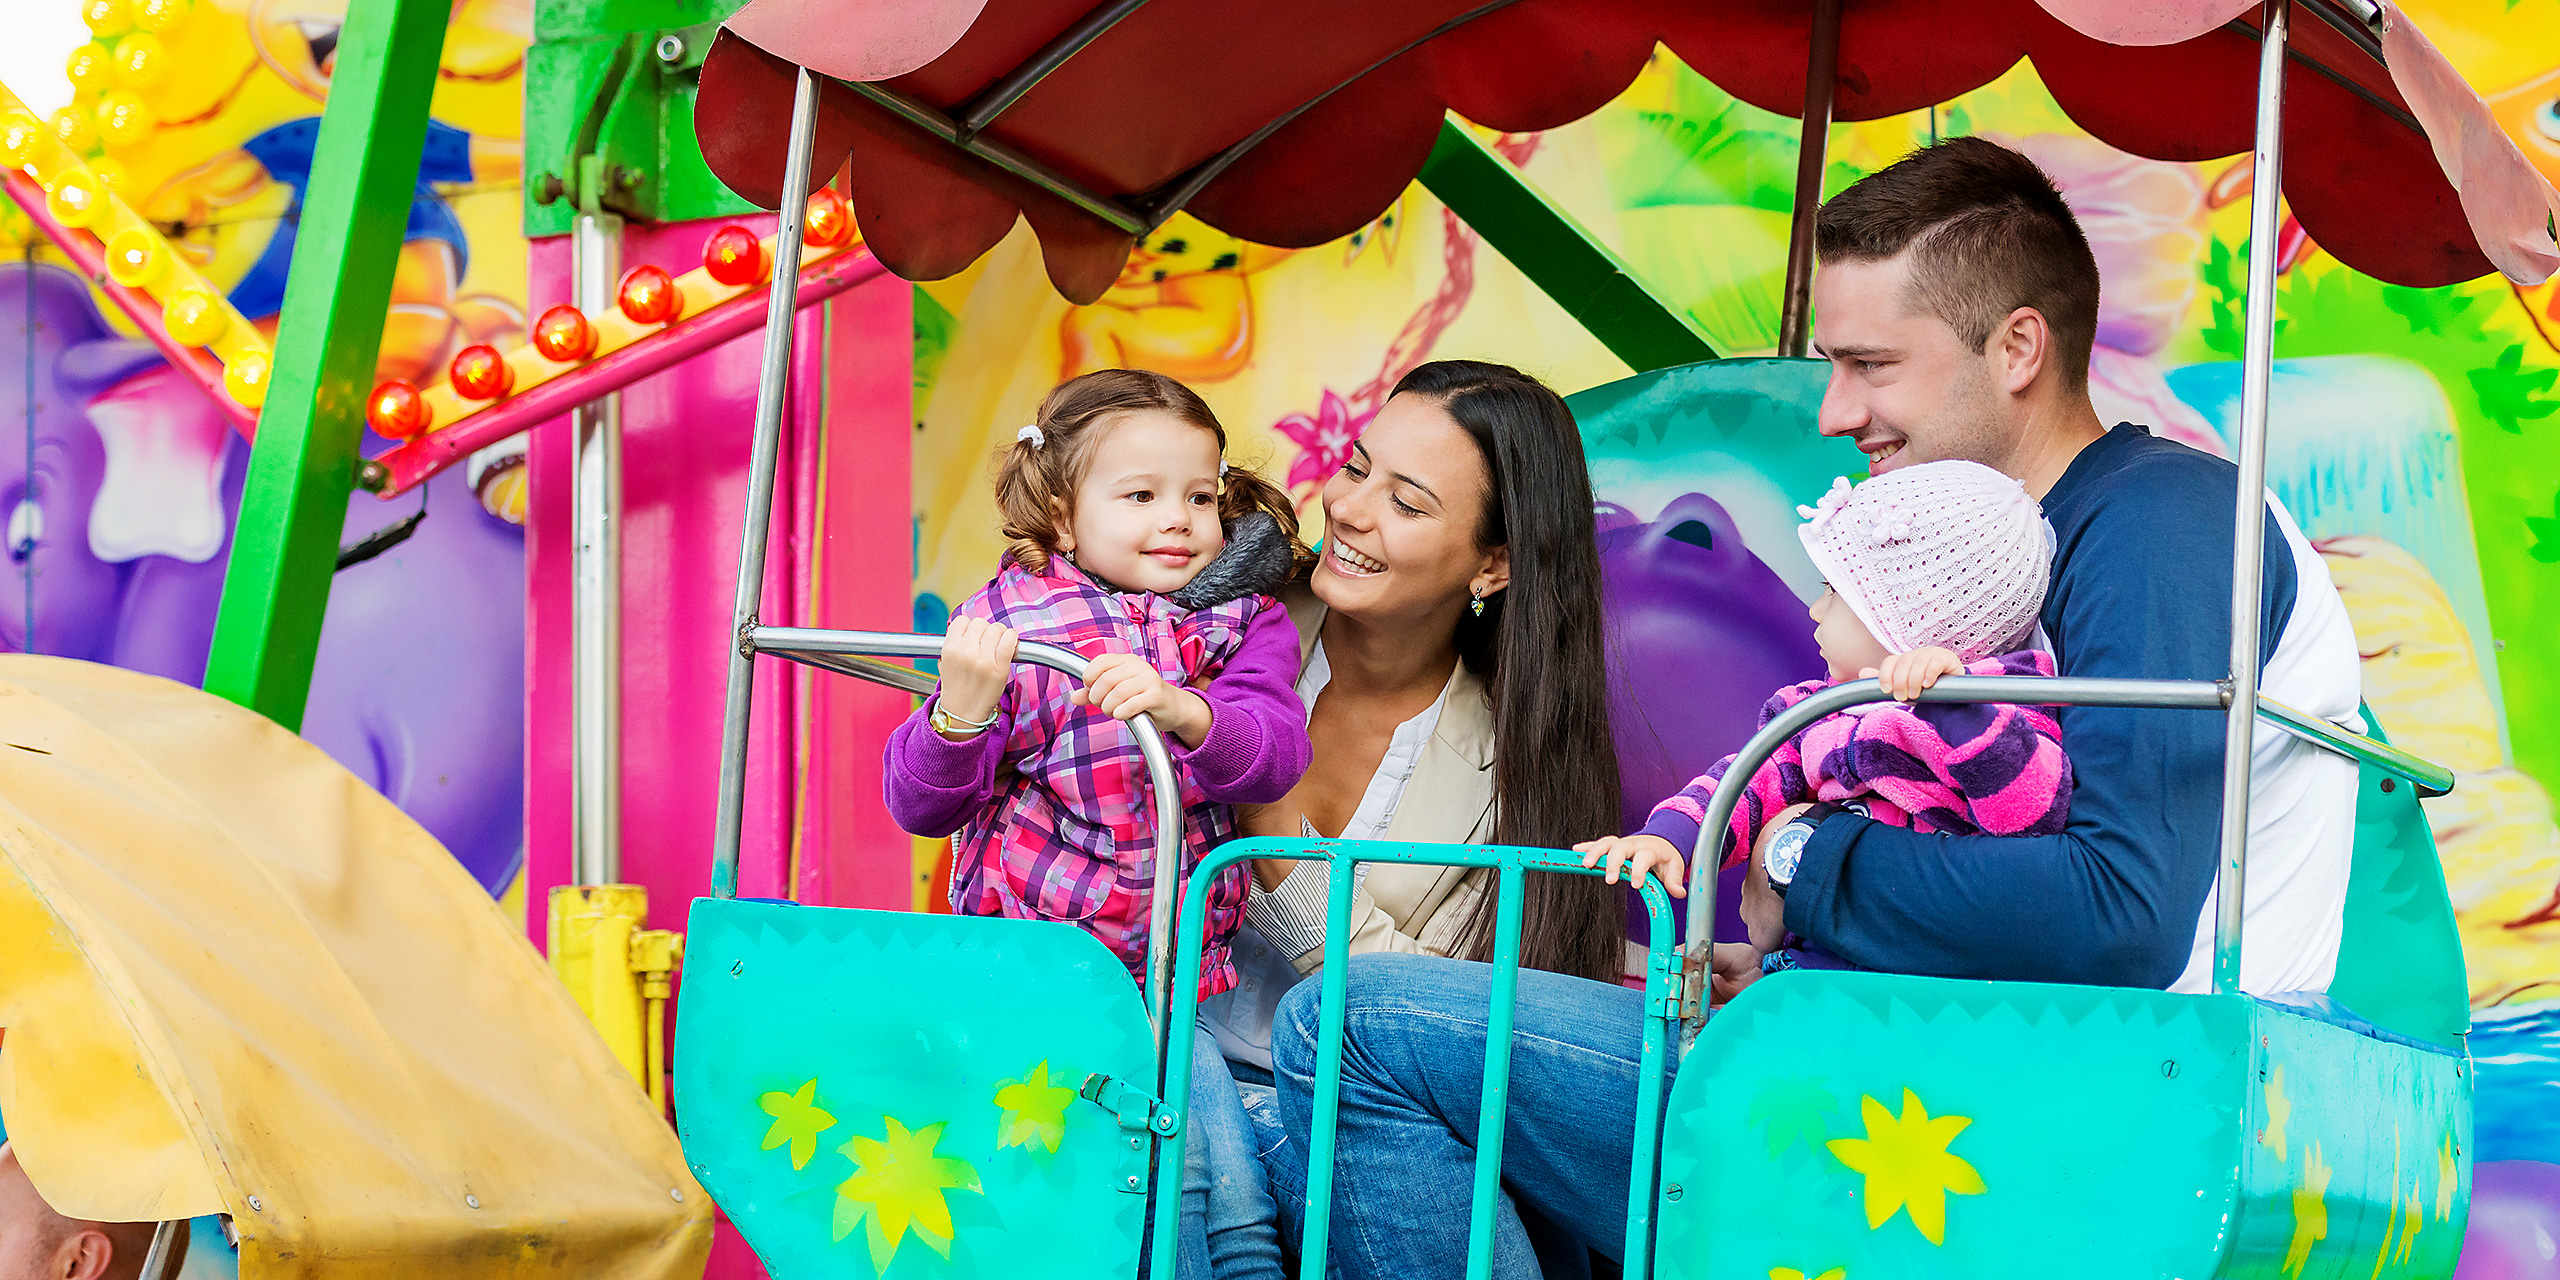 Enjoy Theme Park Rides With Your Kids!